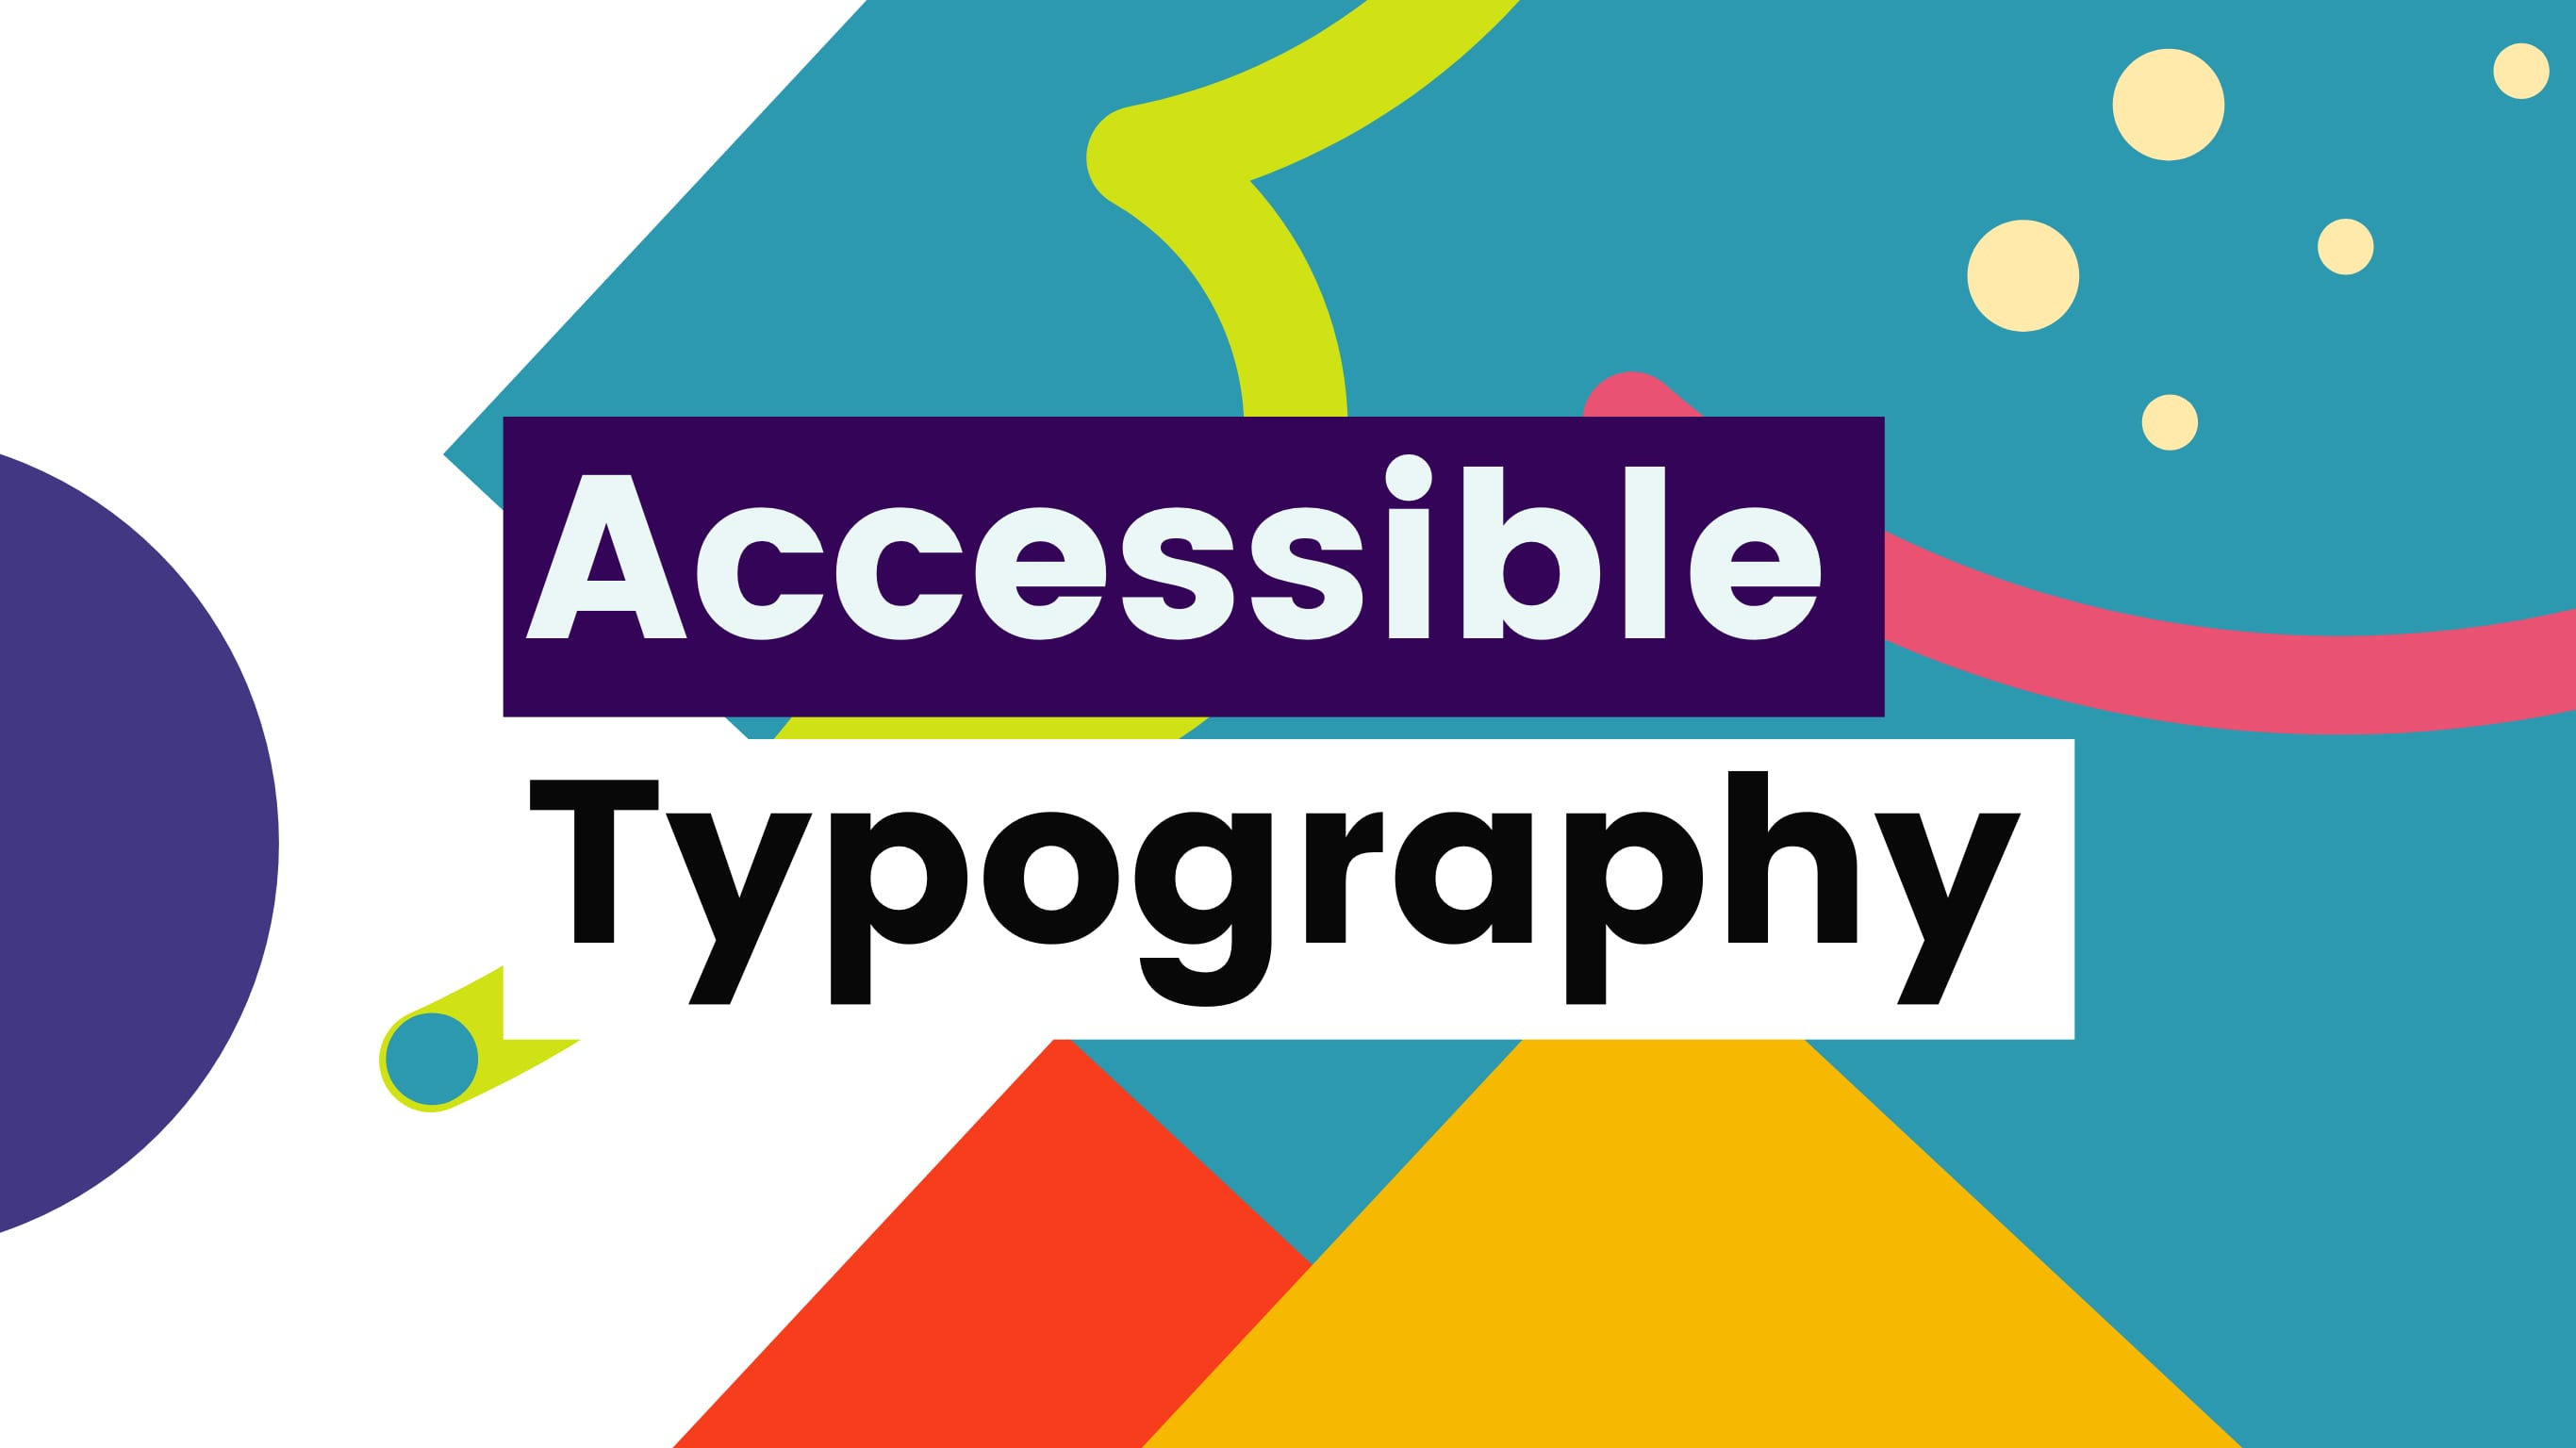 Abstract graphic with the words 'Accessible Typography' written on top